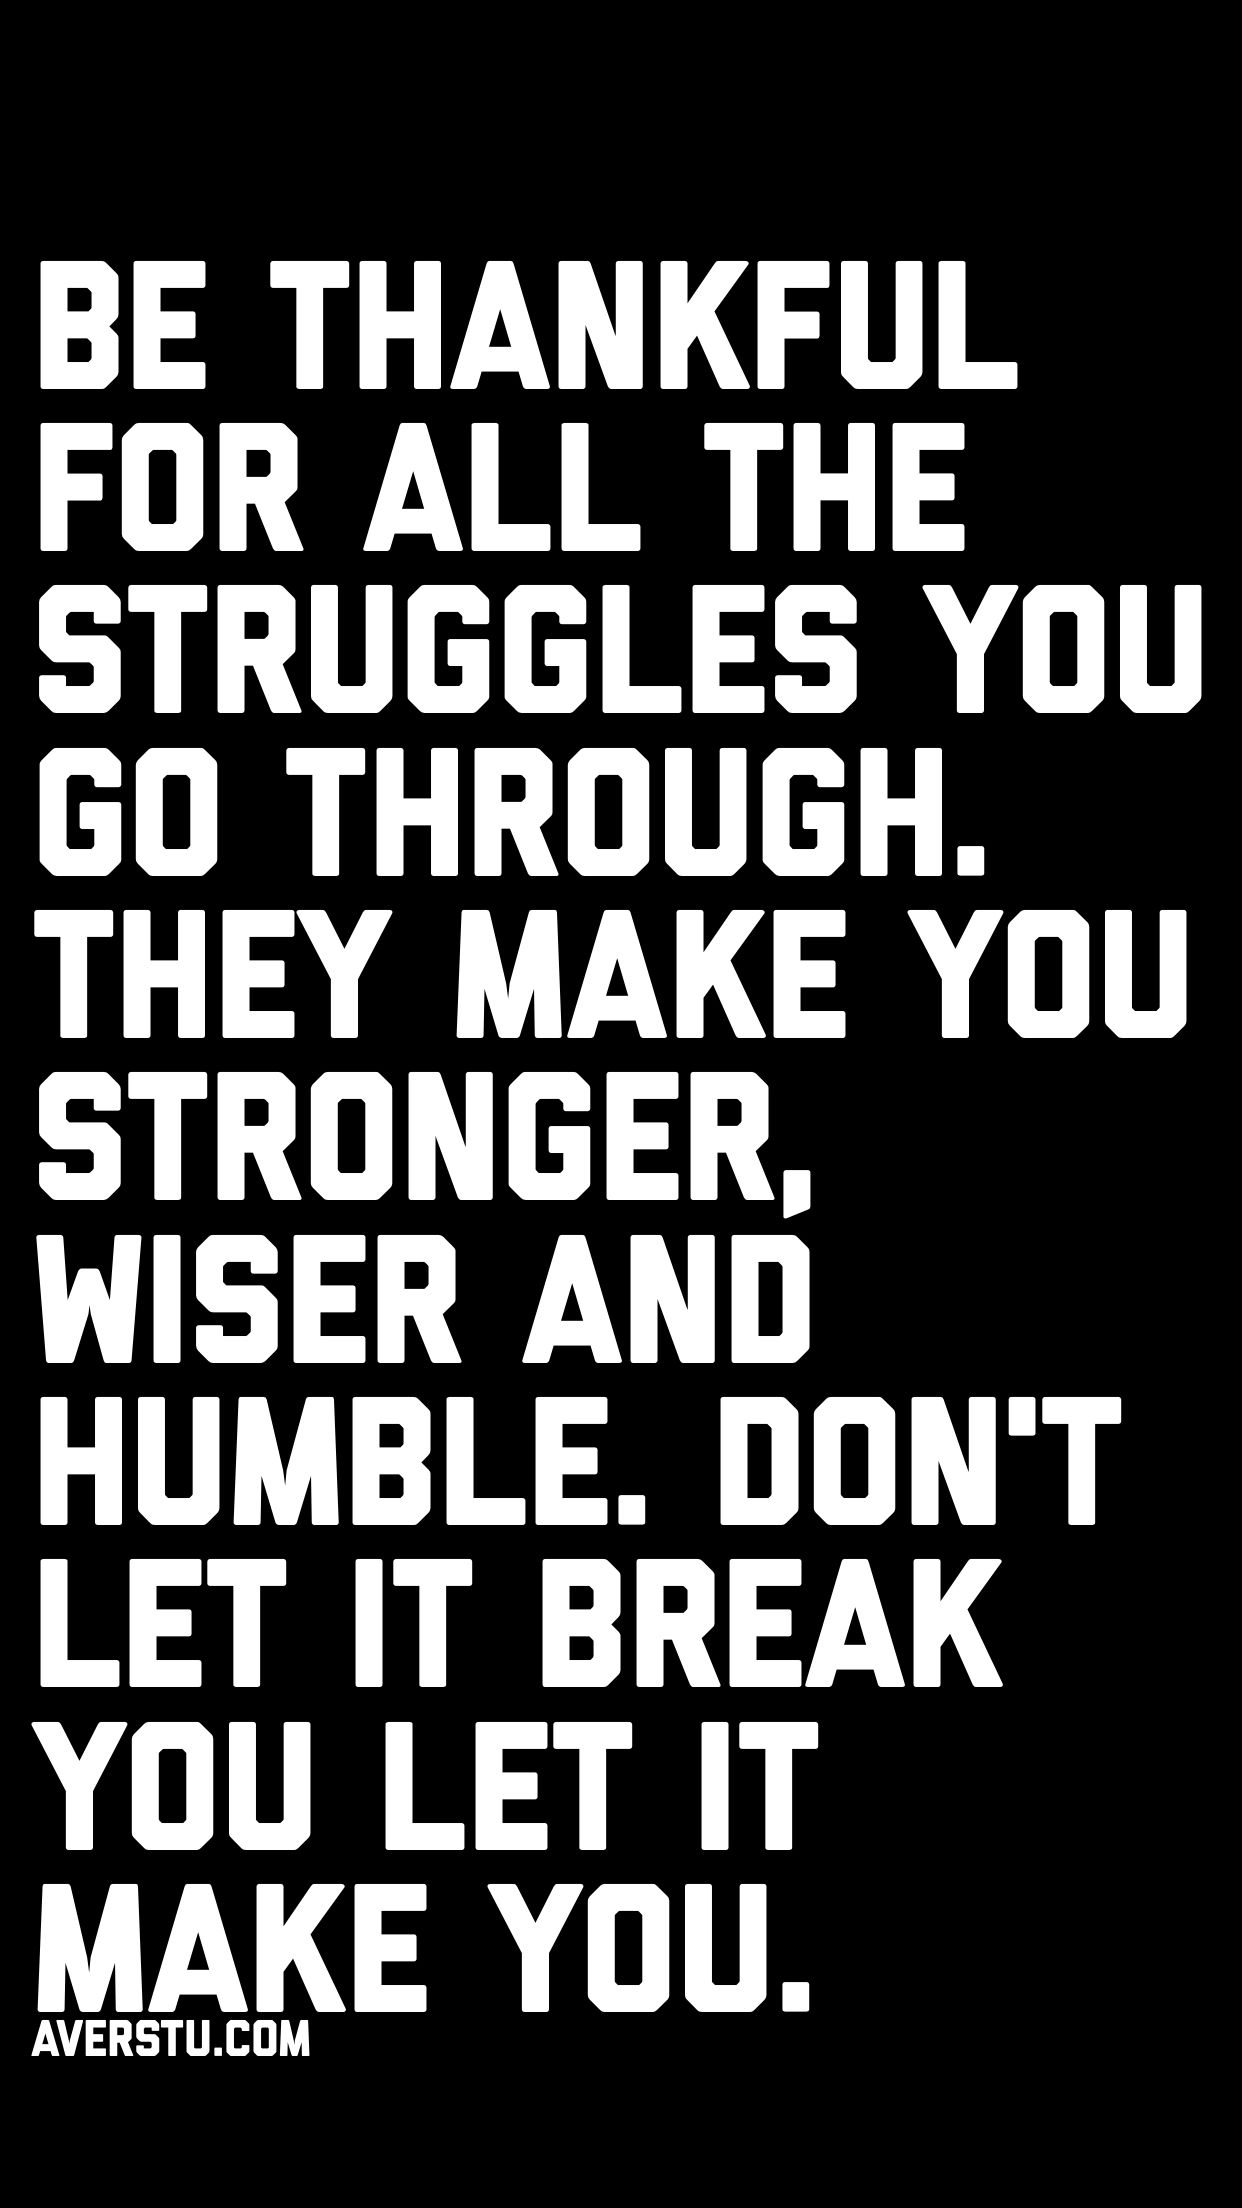 1200 Motivational Quotes Part 2 The Ultimate Inspirational Life Quotes Humble Quotes Makes You Stronger Quotes Real Quotes